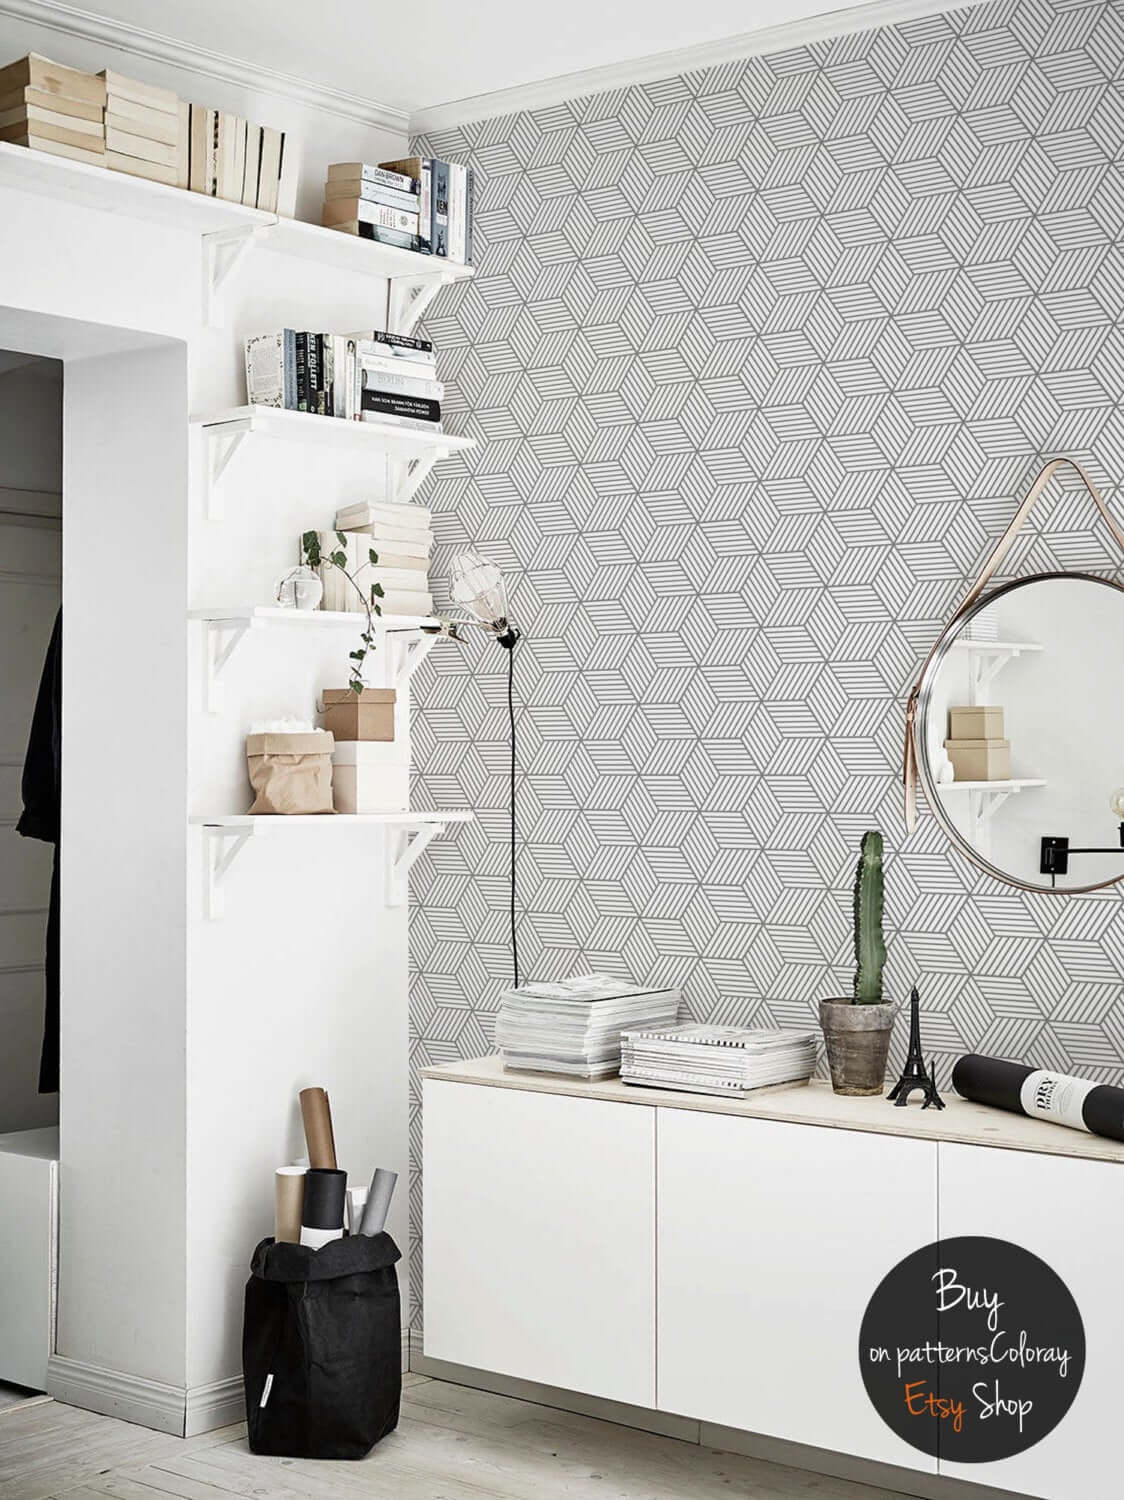 Cool Geometric-Themed Black and White Room